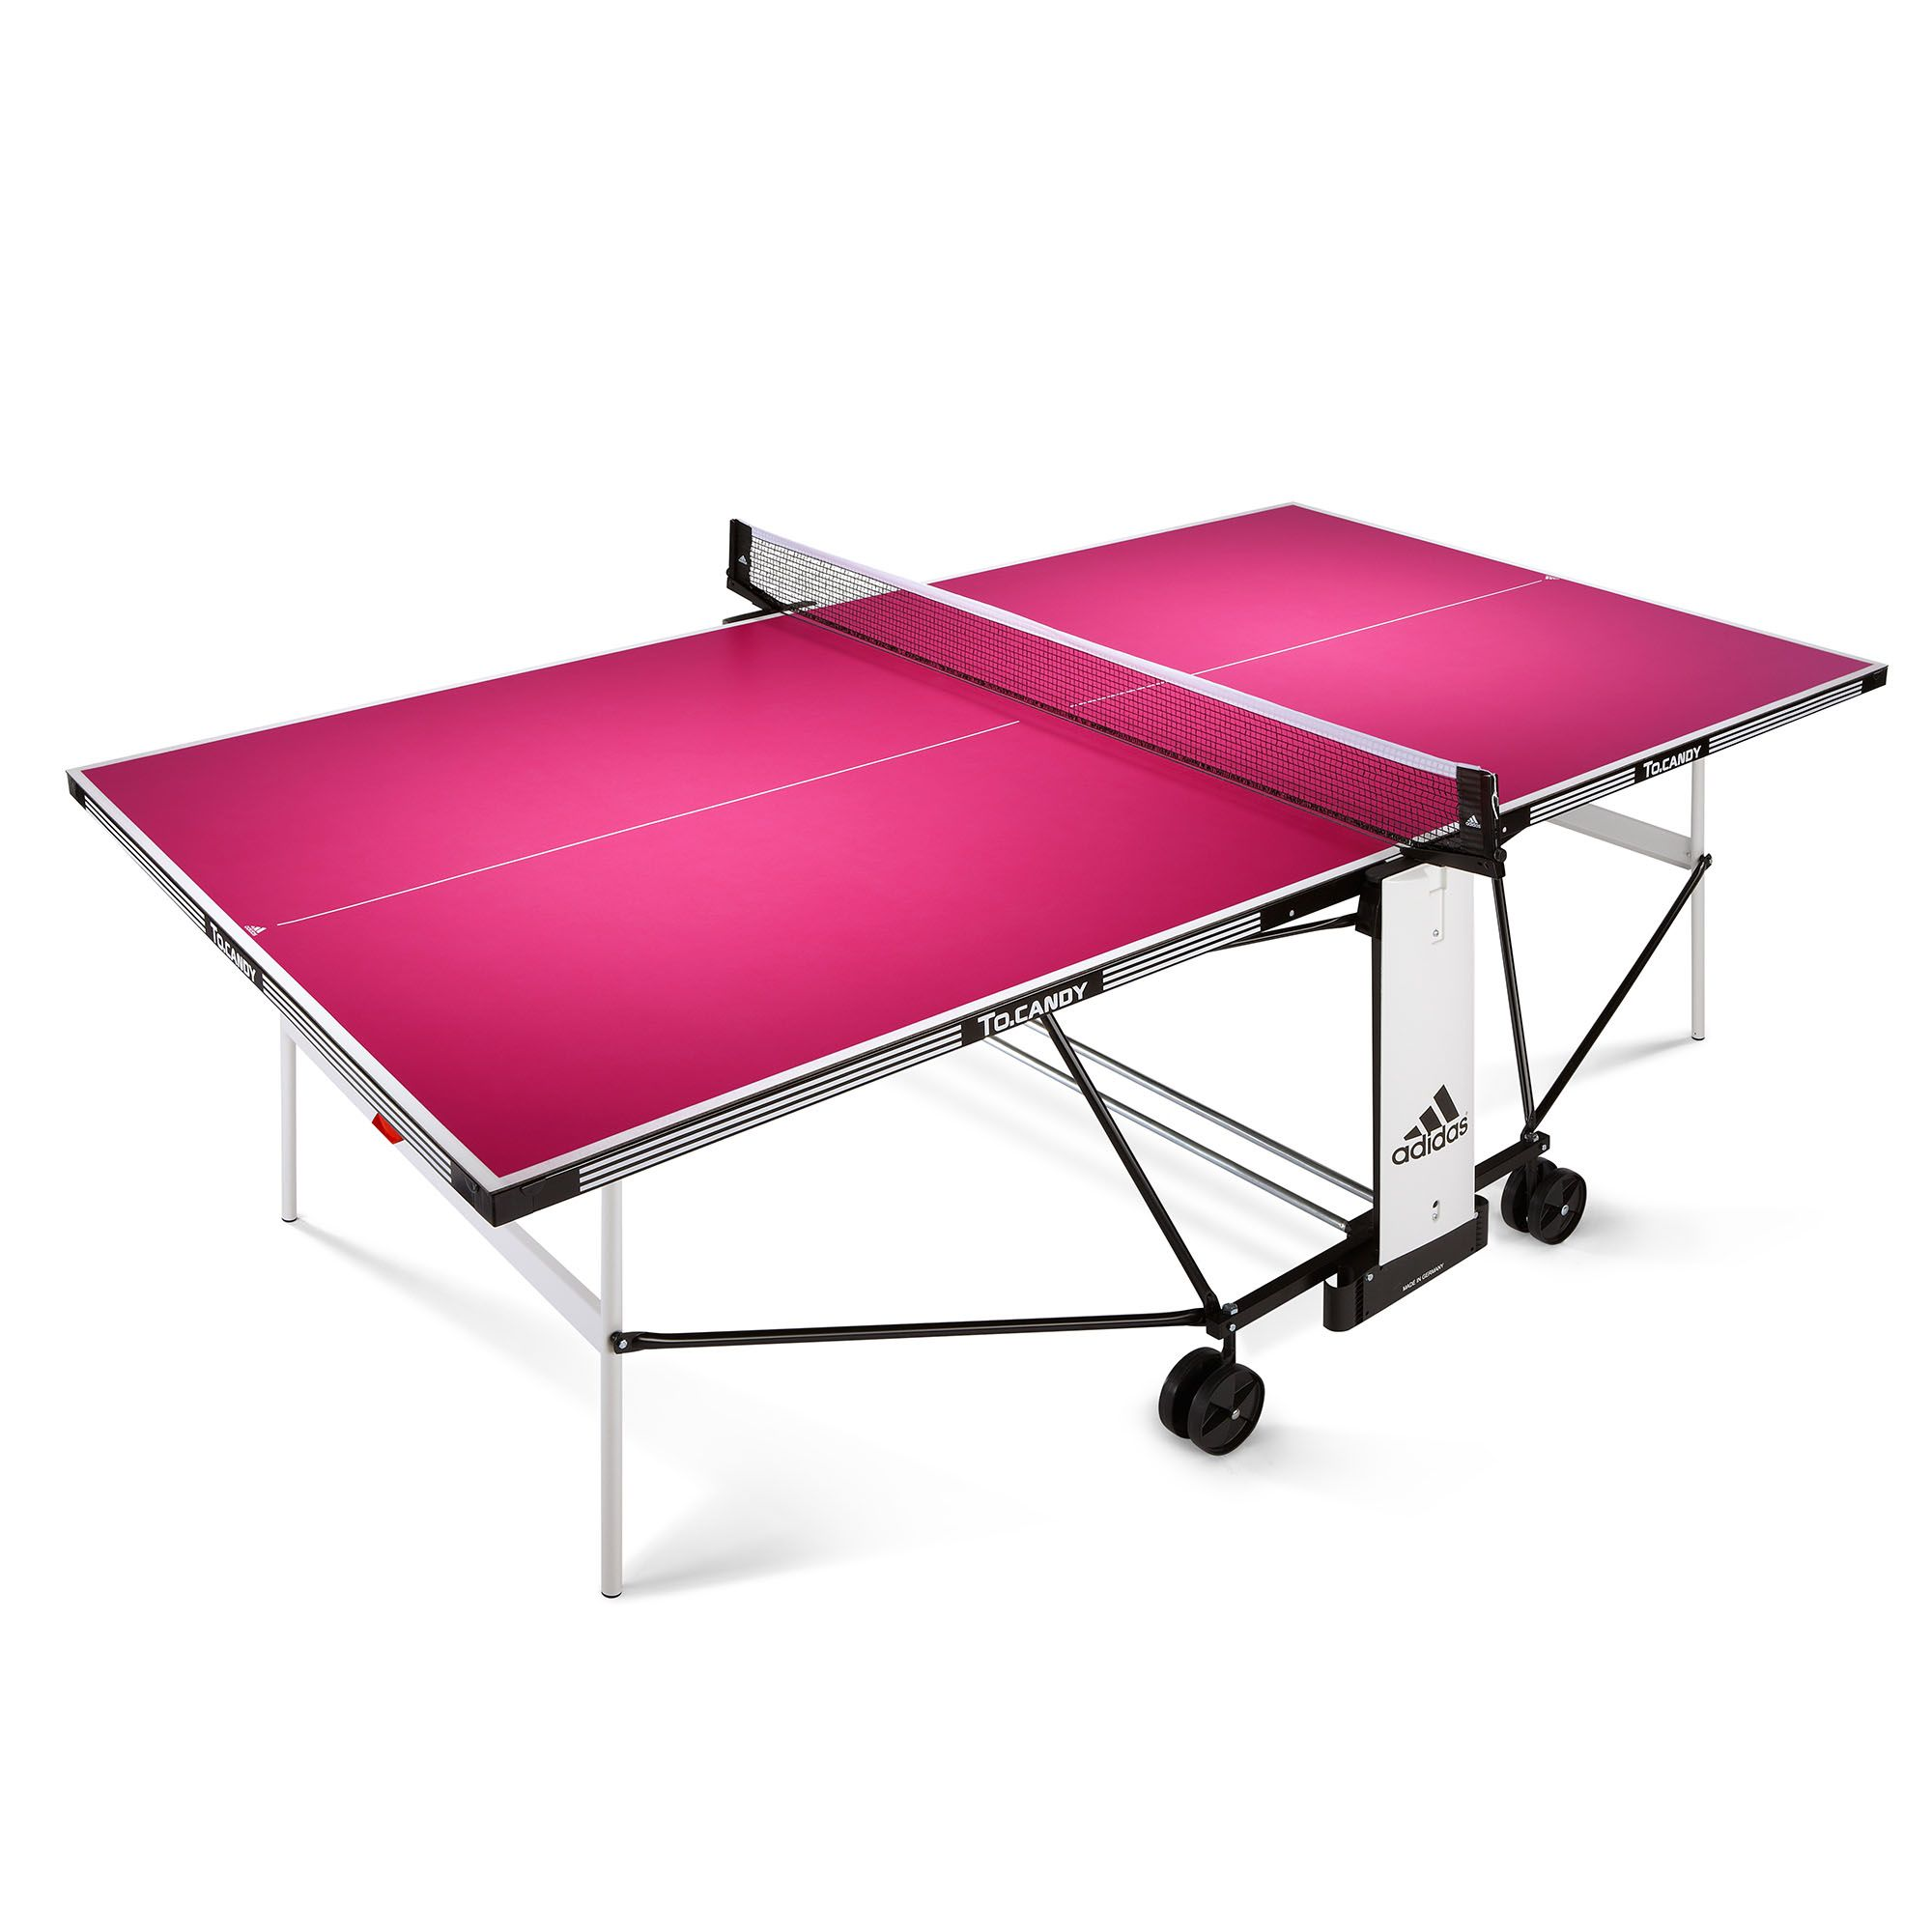 Adidas to candy outdoor table tennis table - Weatherproof table tennis table ...